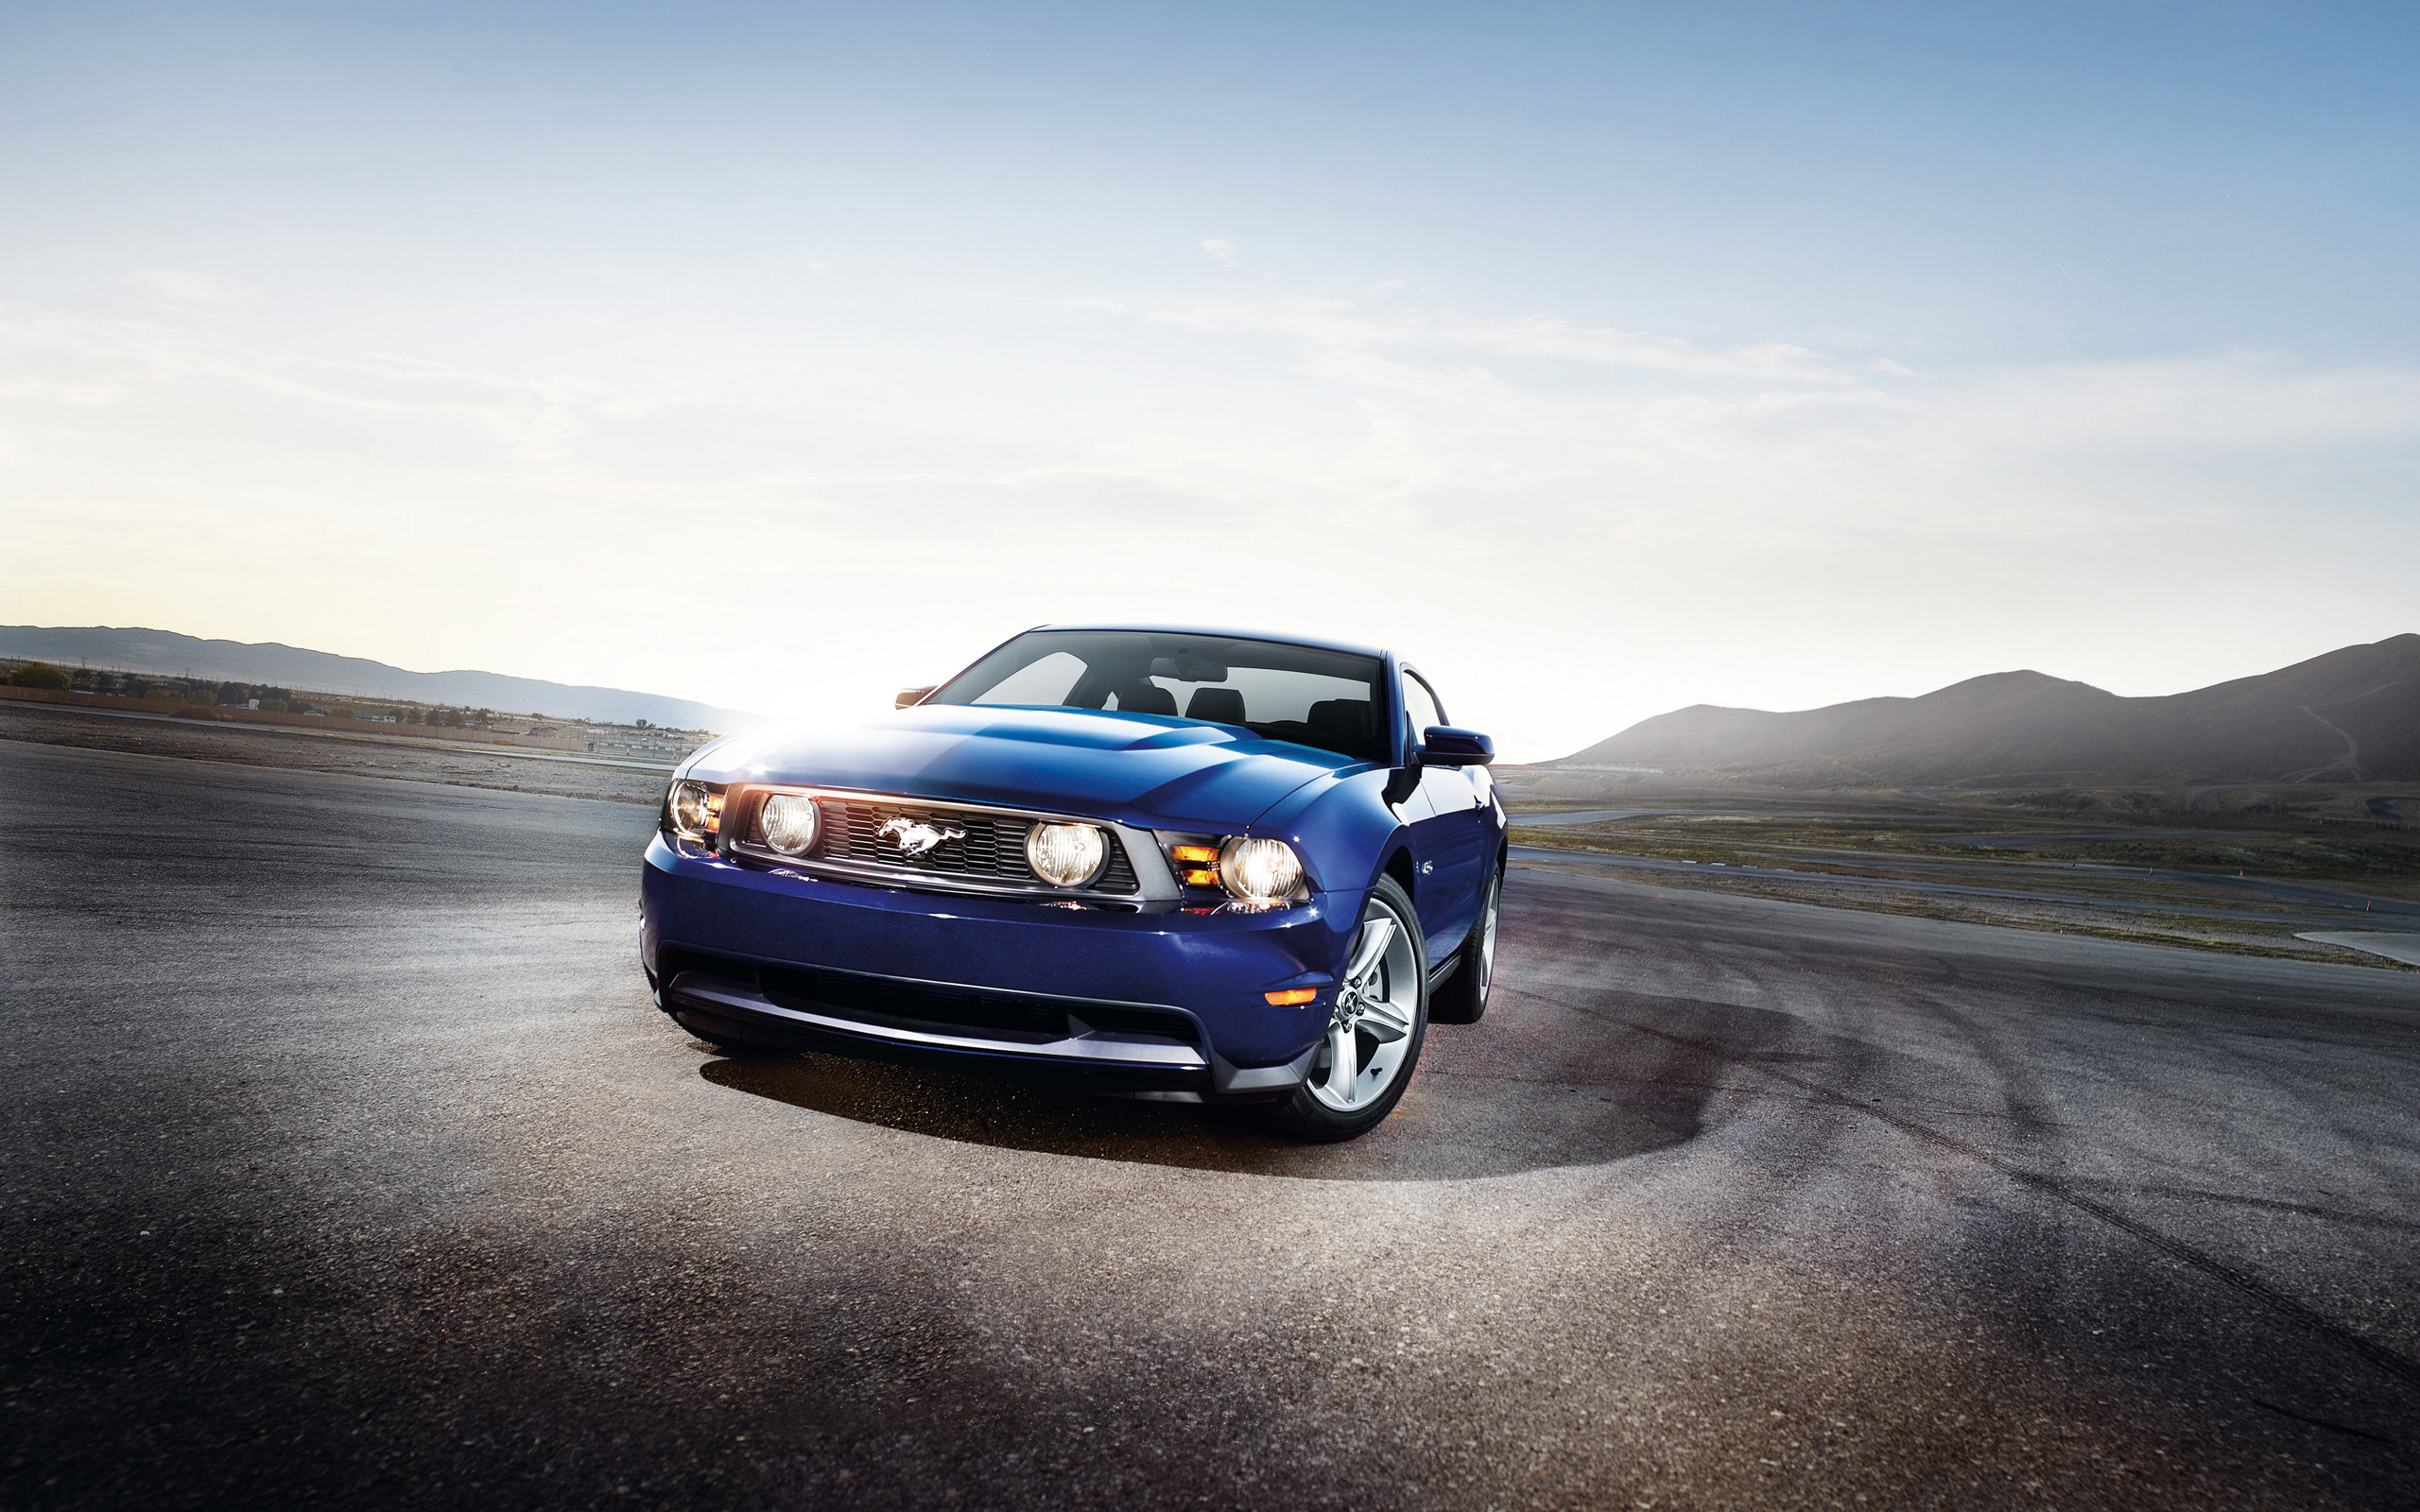 2012 ford mustang shelby gt500 wallpaper hd car. Black Bedroom Furniture Sets. Home Design Ideas